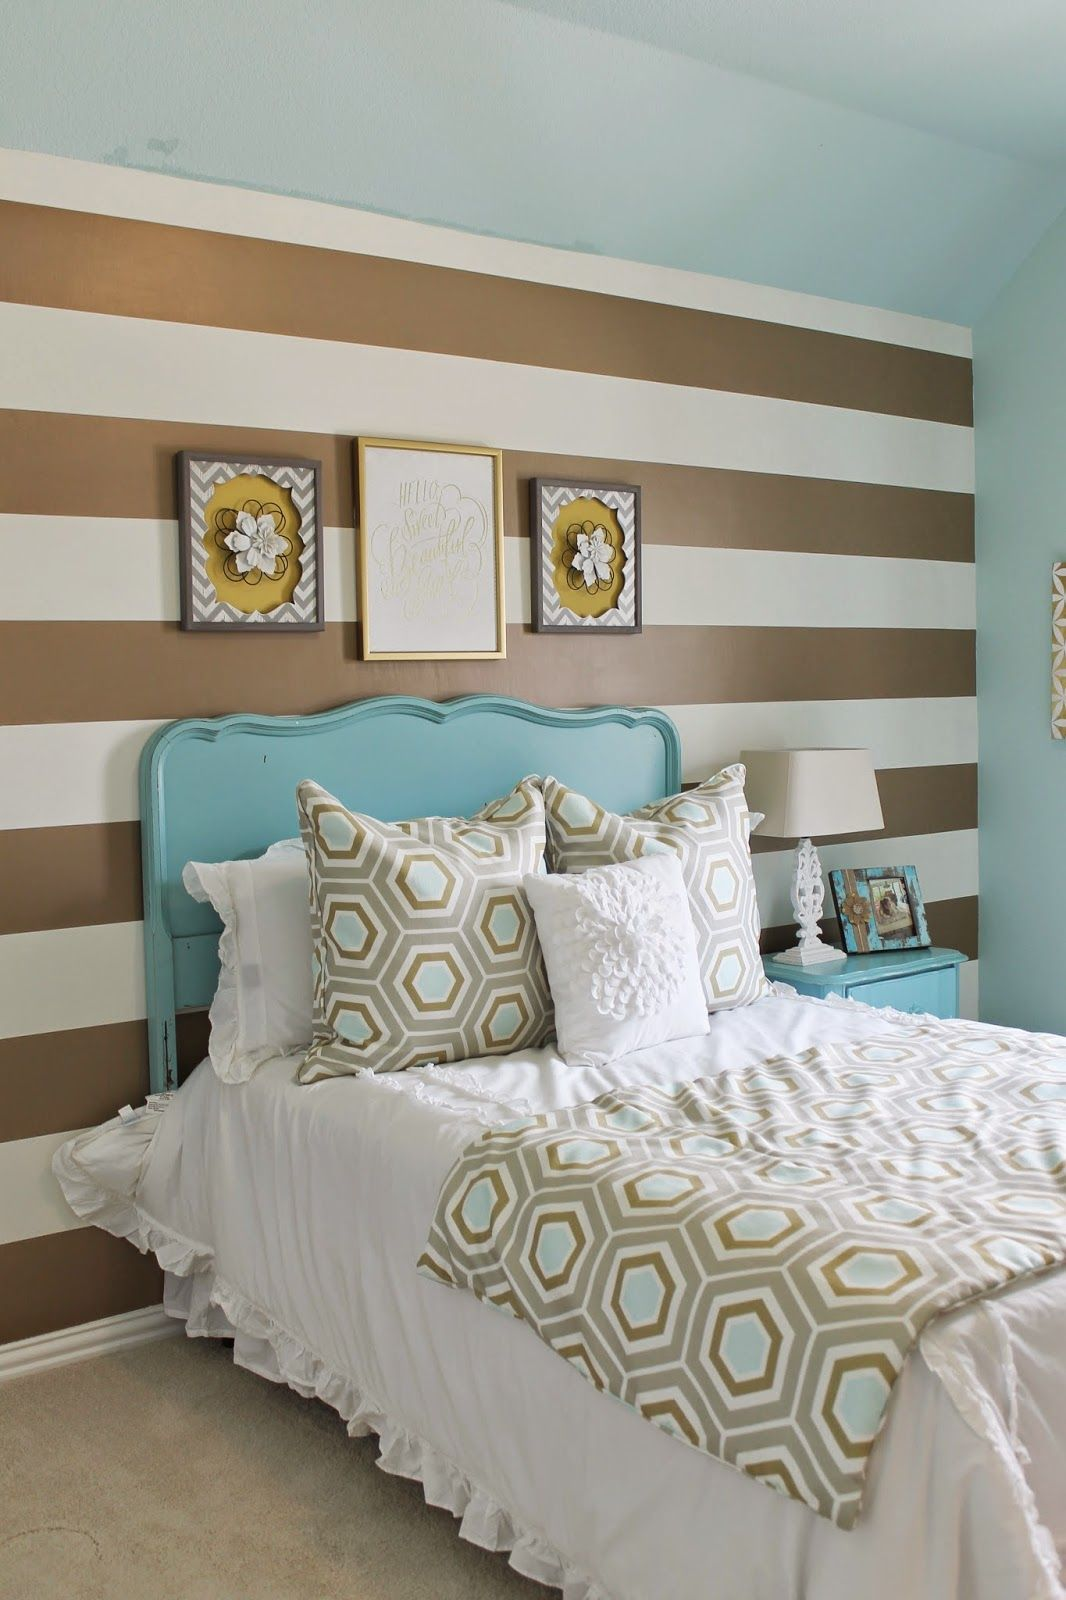 Shabby chic meets glam in this cute teens room Gold and Turquoise